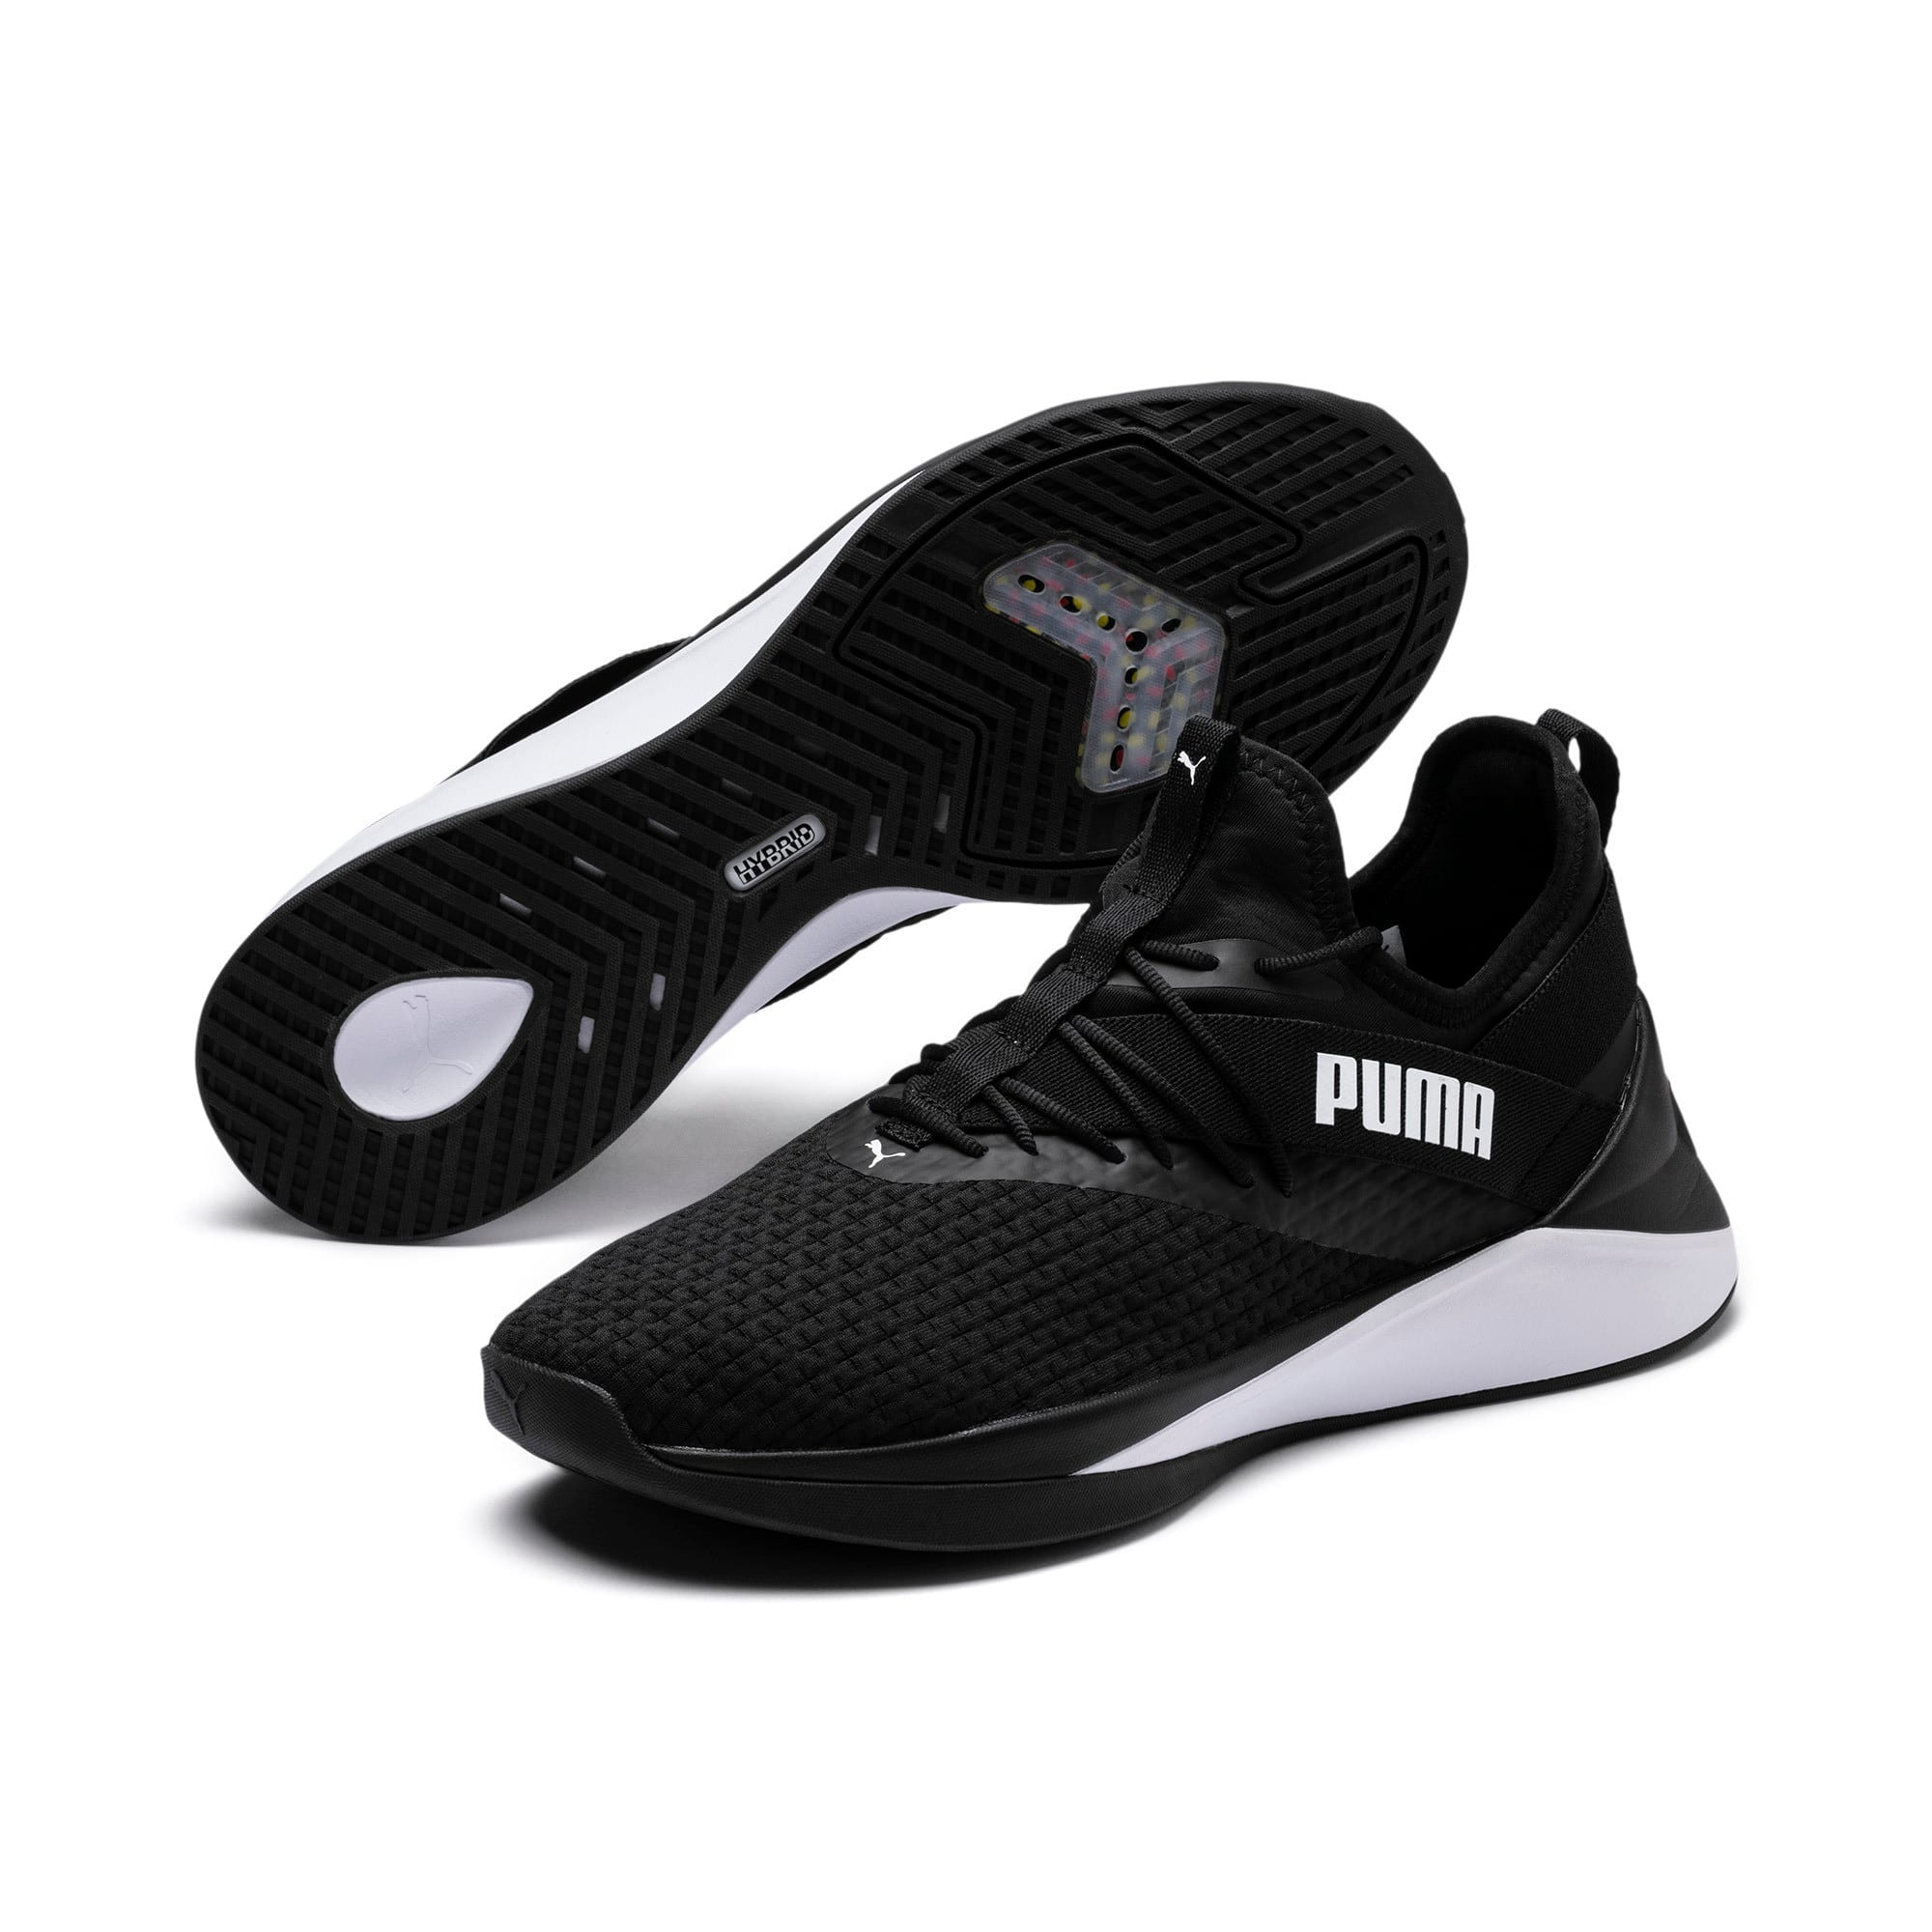 Jaab XT sneakers voor mannen, Puma Black-Puma White, large